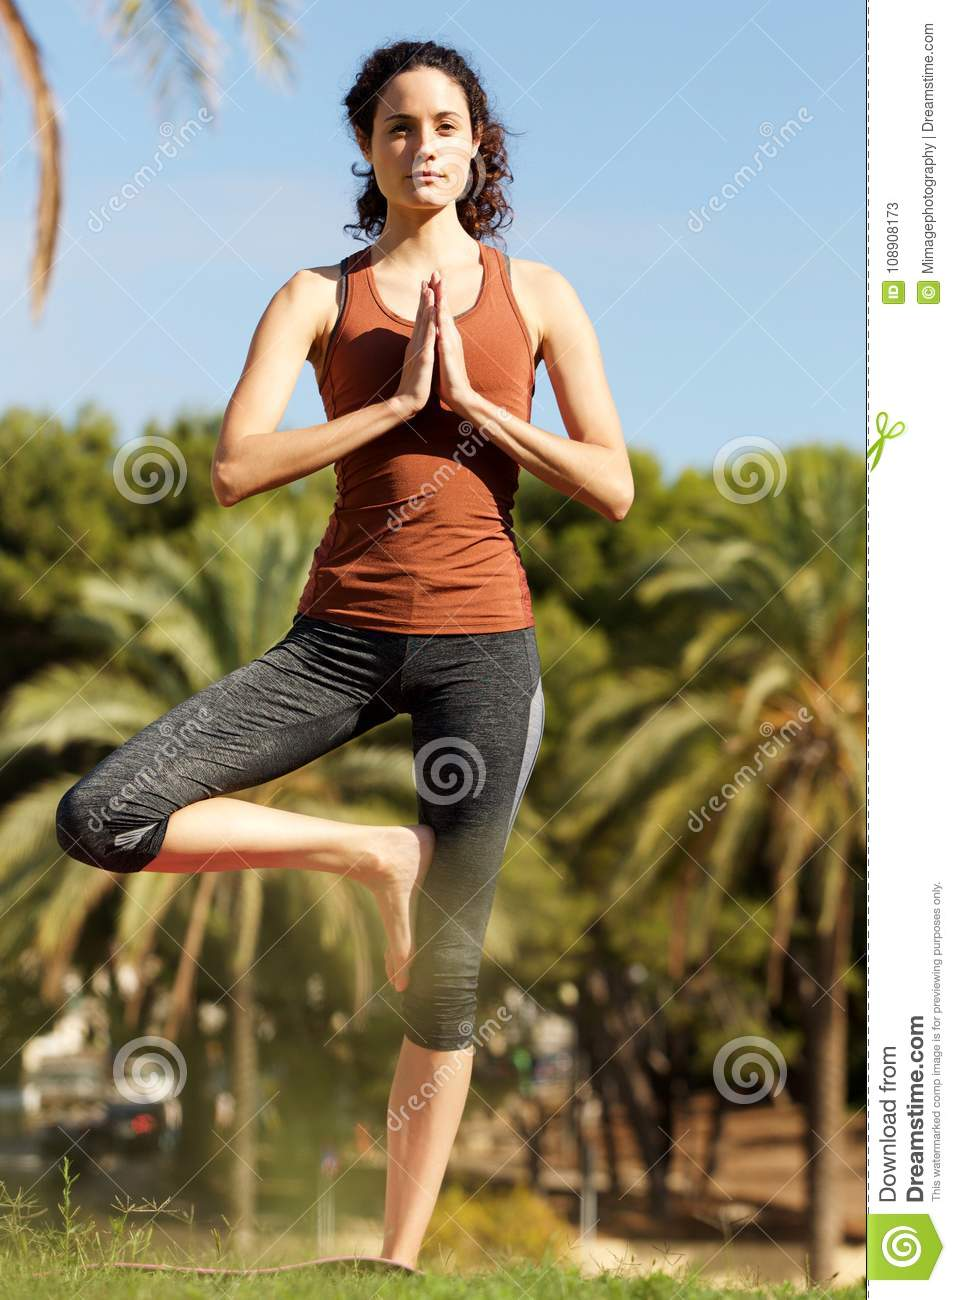 Young Woman Standing Open One Leg In Yoga Position Stock ...